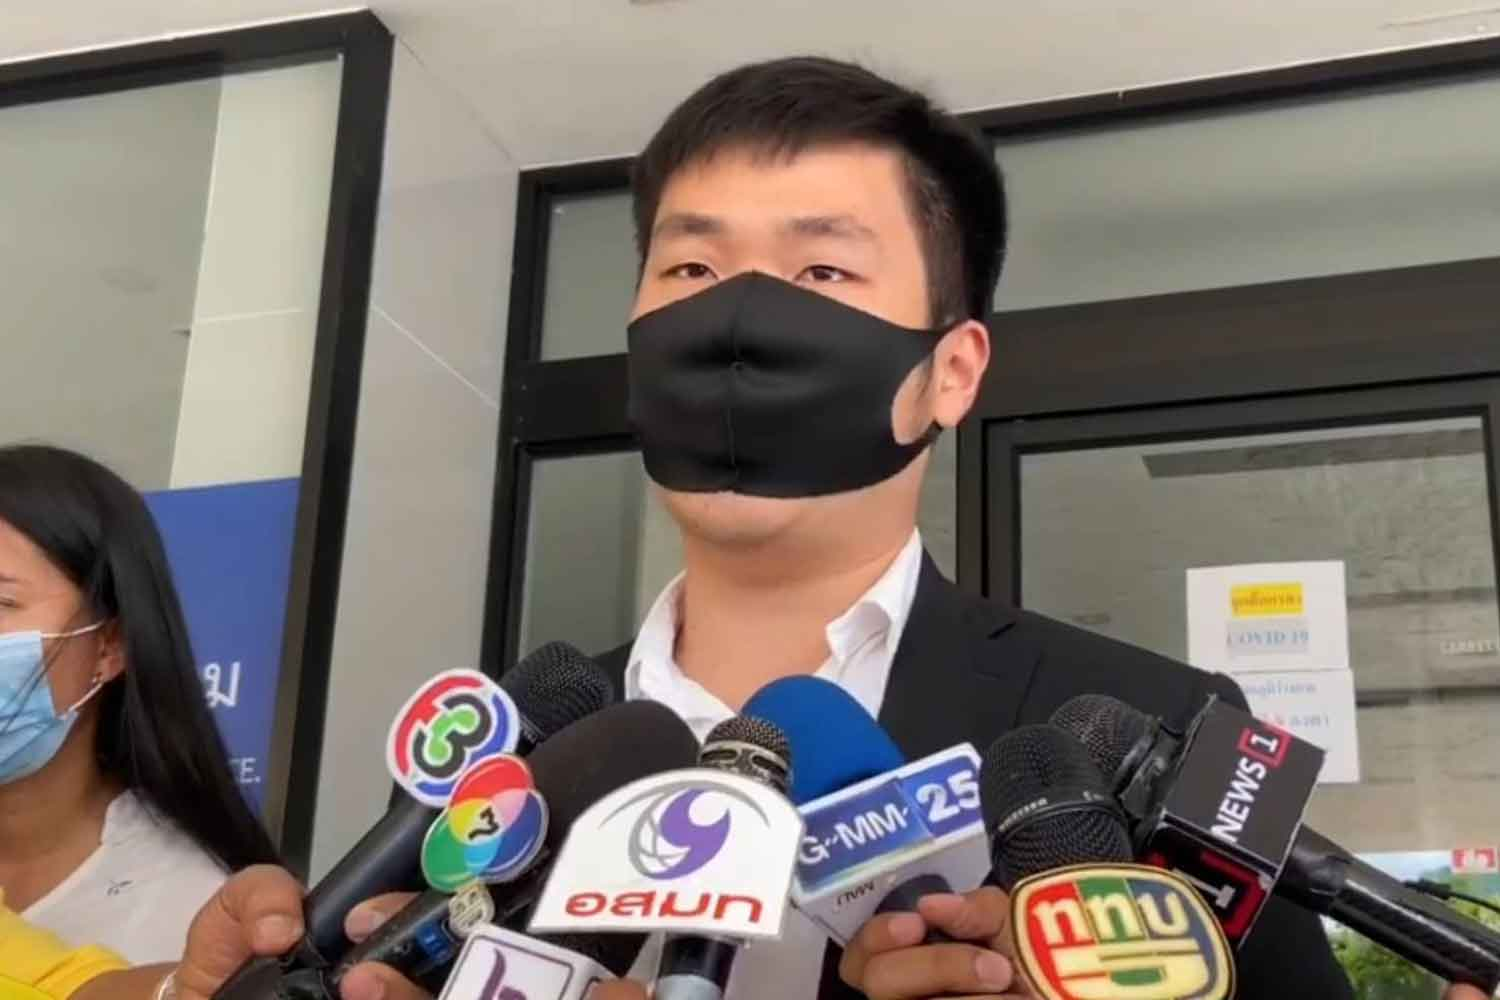 Woraphat Tangpakorn, son of Banyin, is at the Crime Suppression Division headquarters in Bangkok on Thursday. (Photo supplied)